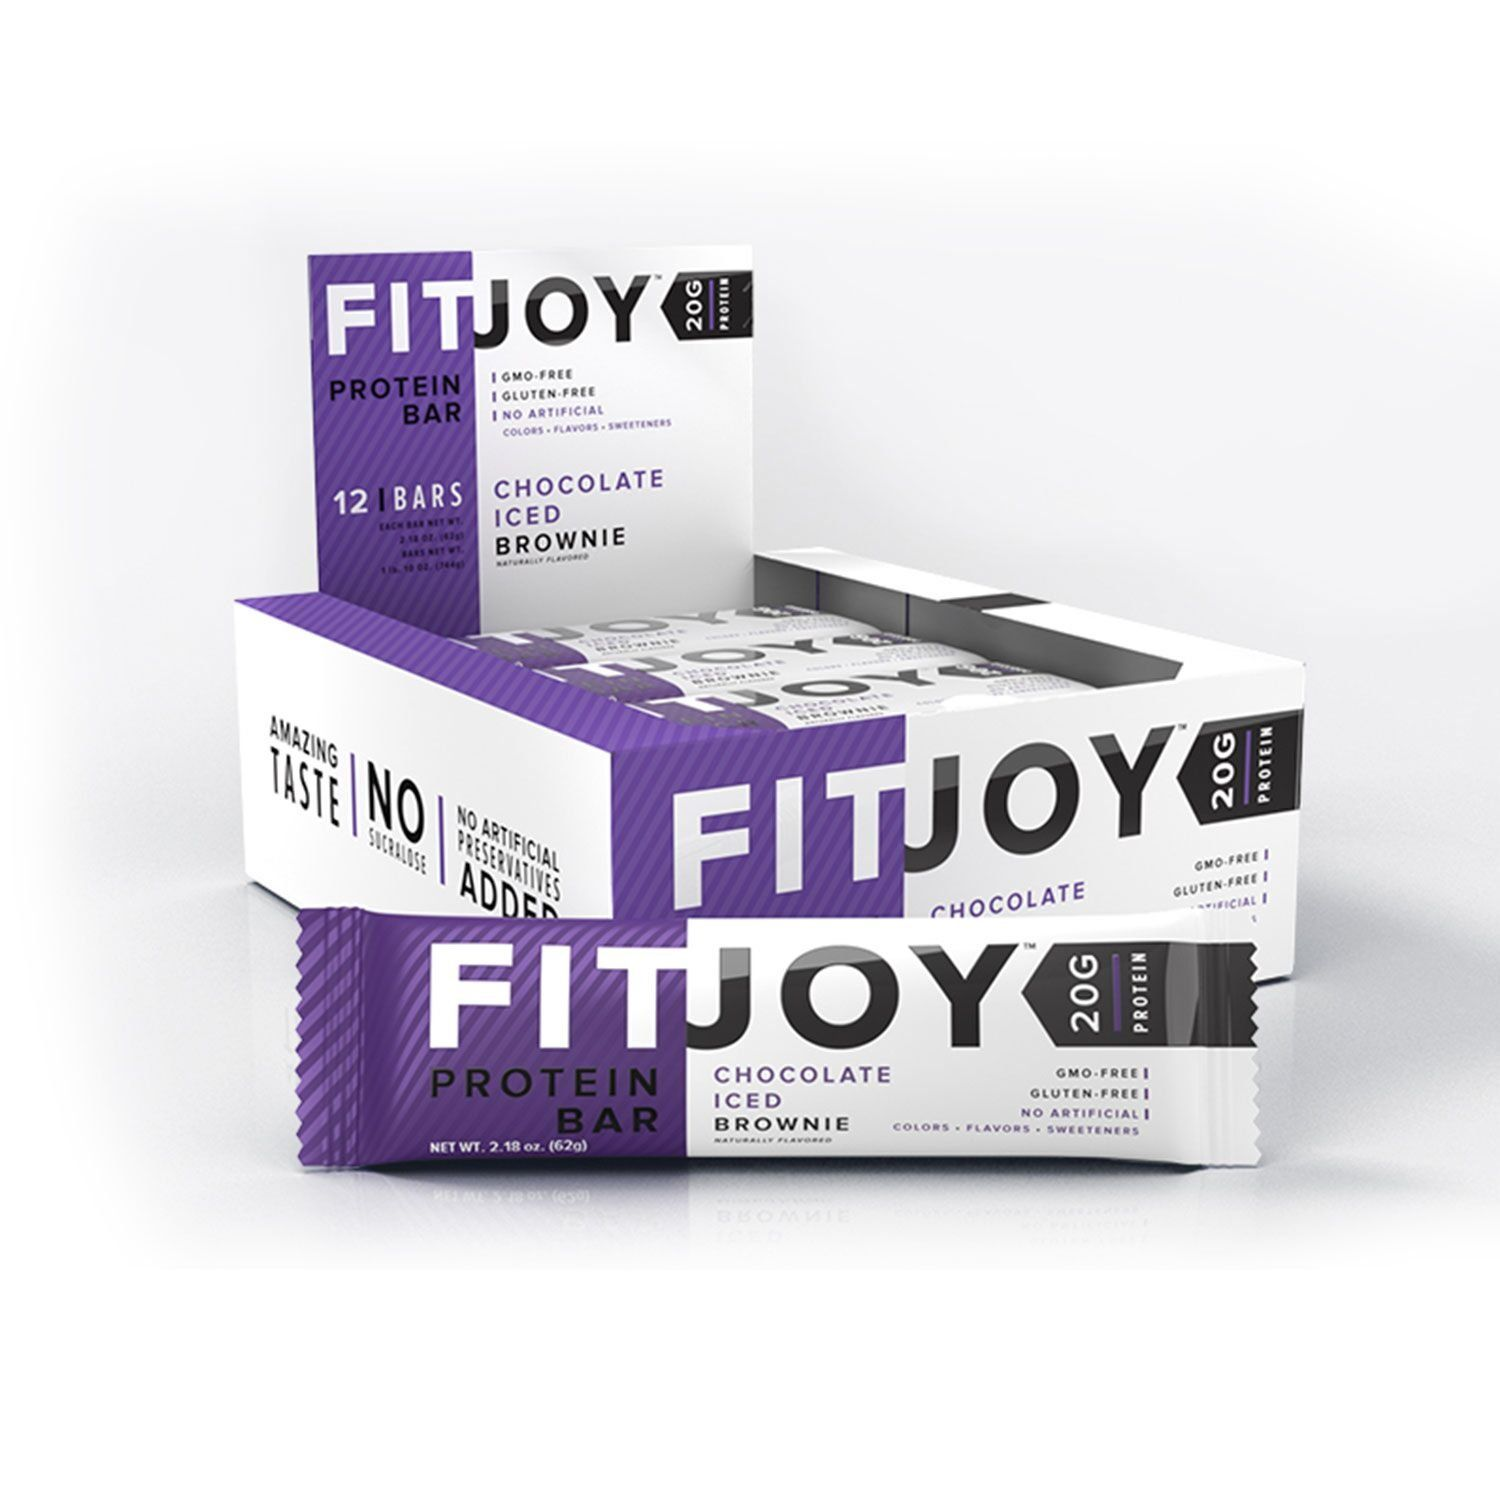 FitJoy Protein Bars Low Carb Low Sugar Gluten Free High